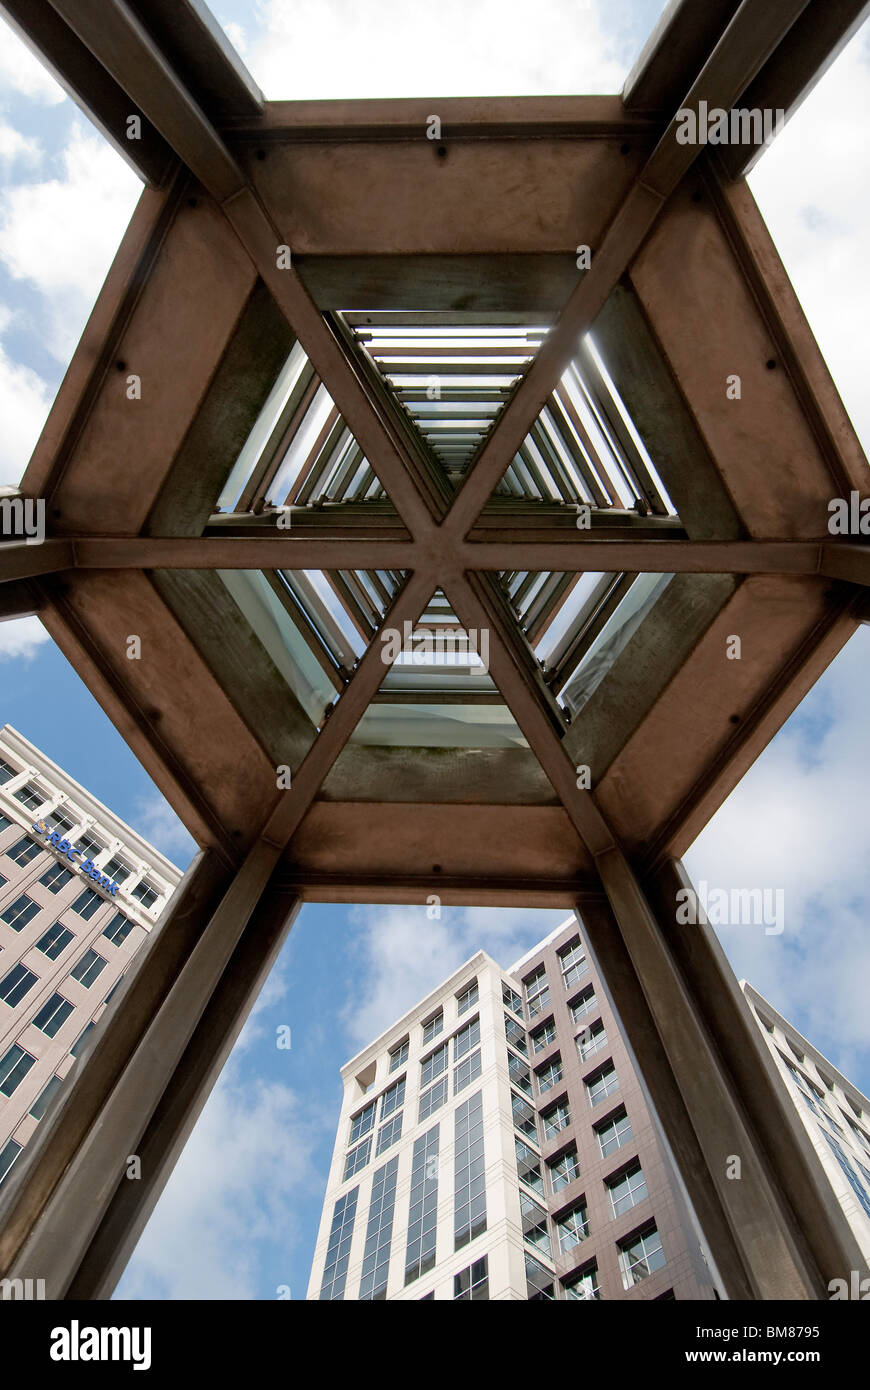 Looking up from under the stainless steel and glass Orlando Tower designed by Ed Carpenter in downtown Orlando, - Stock Image